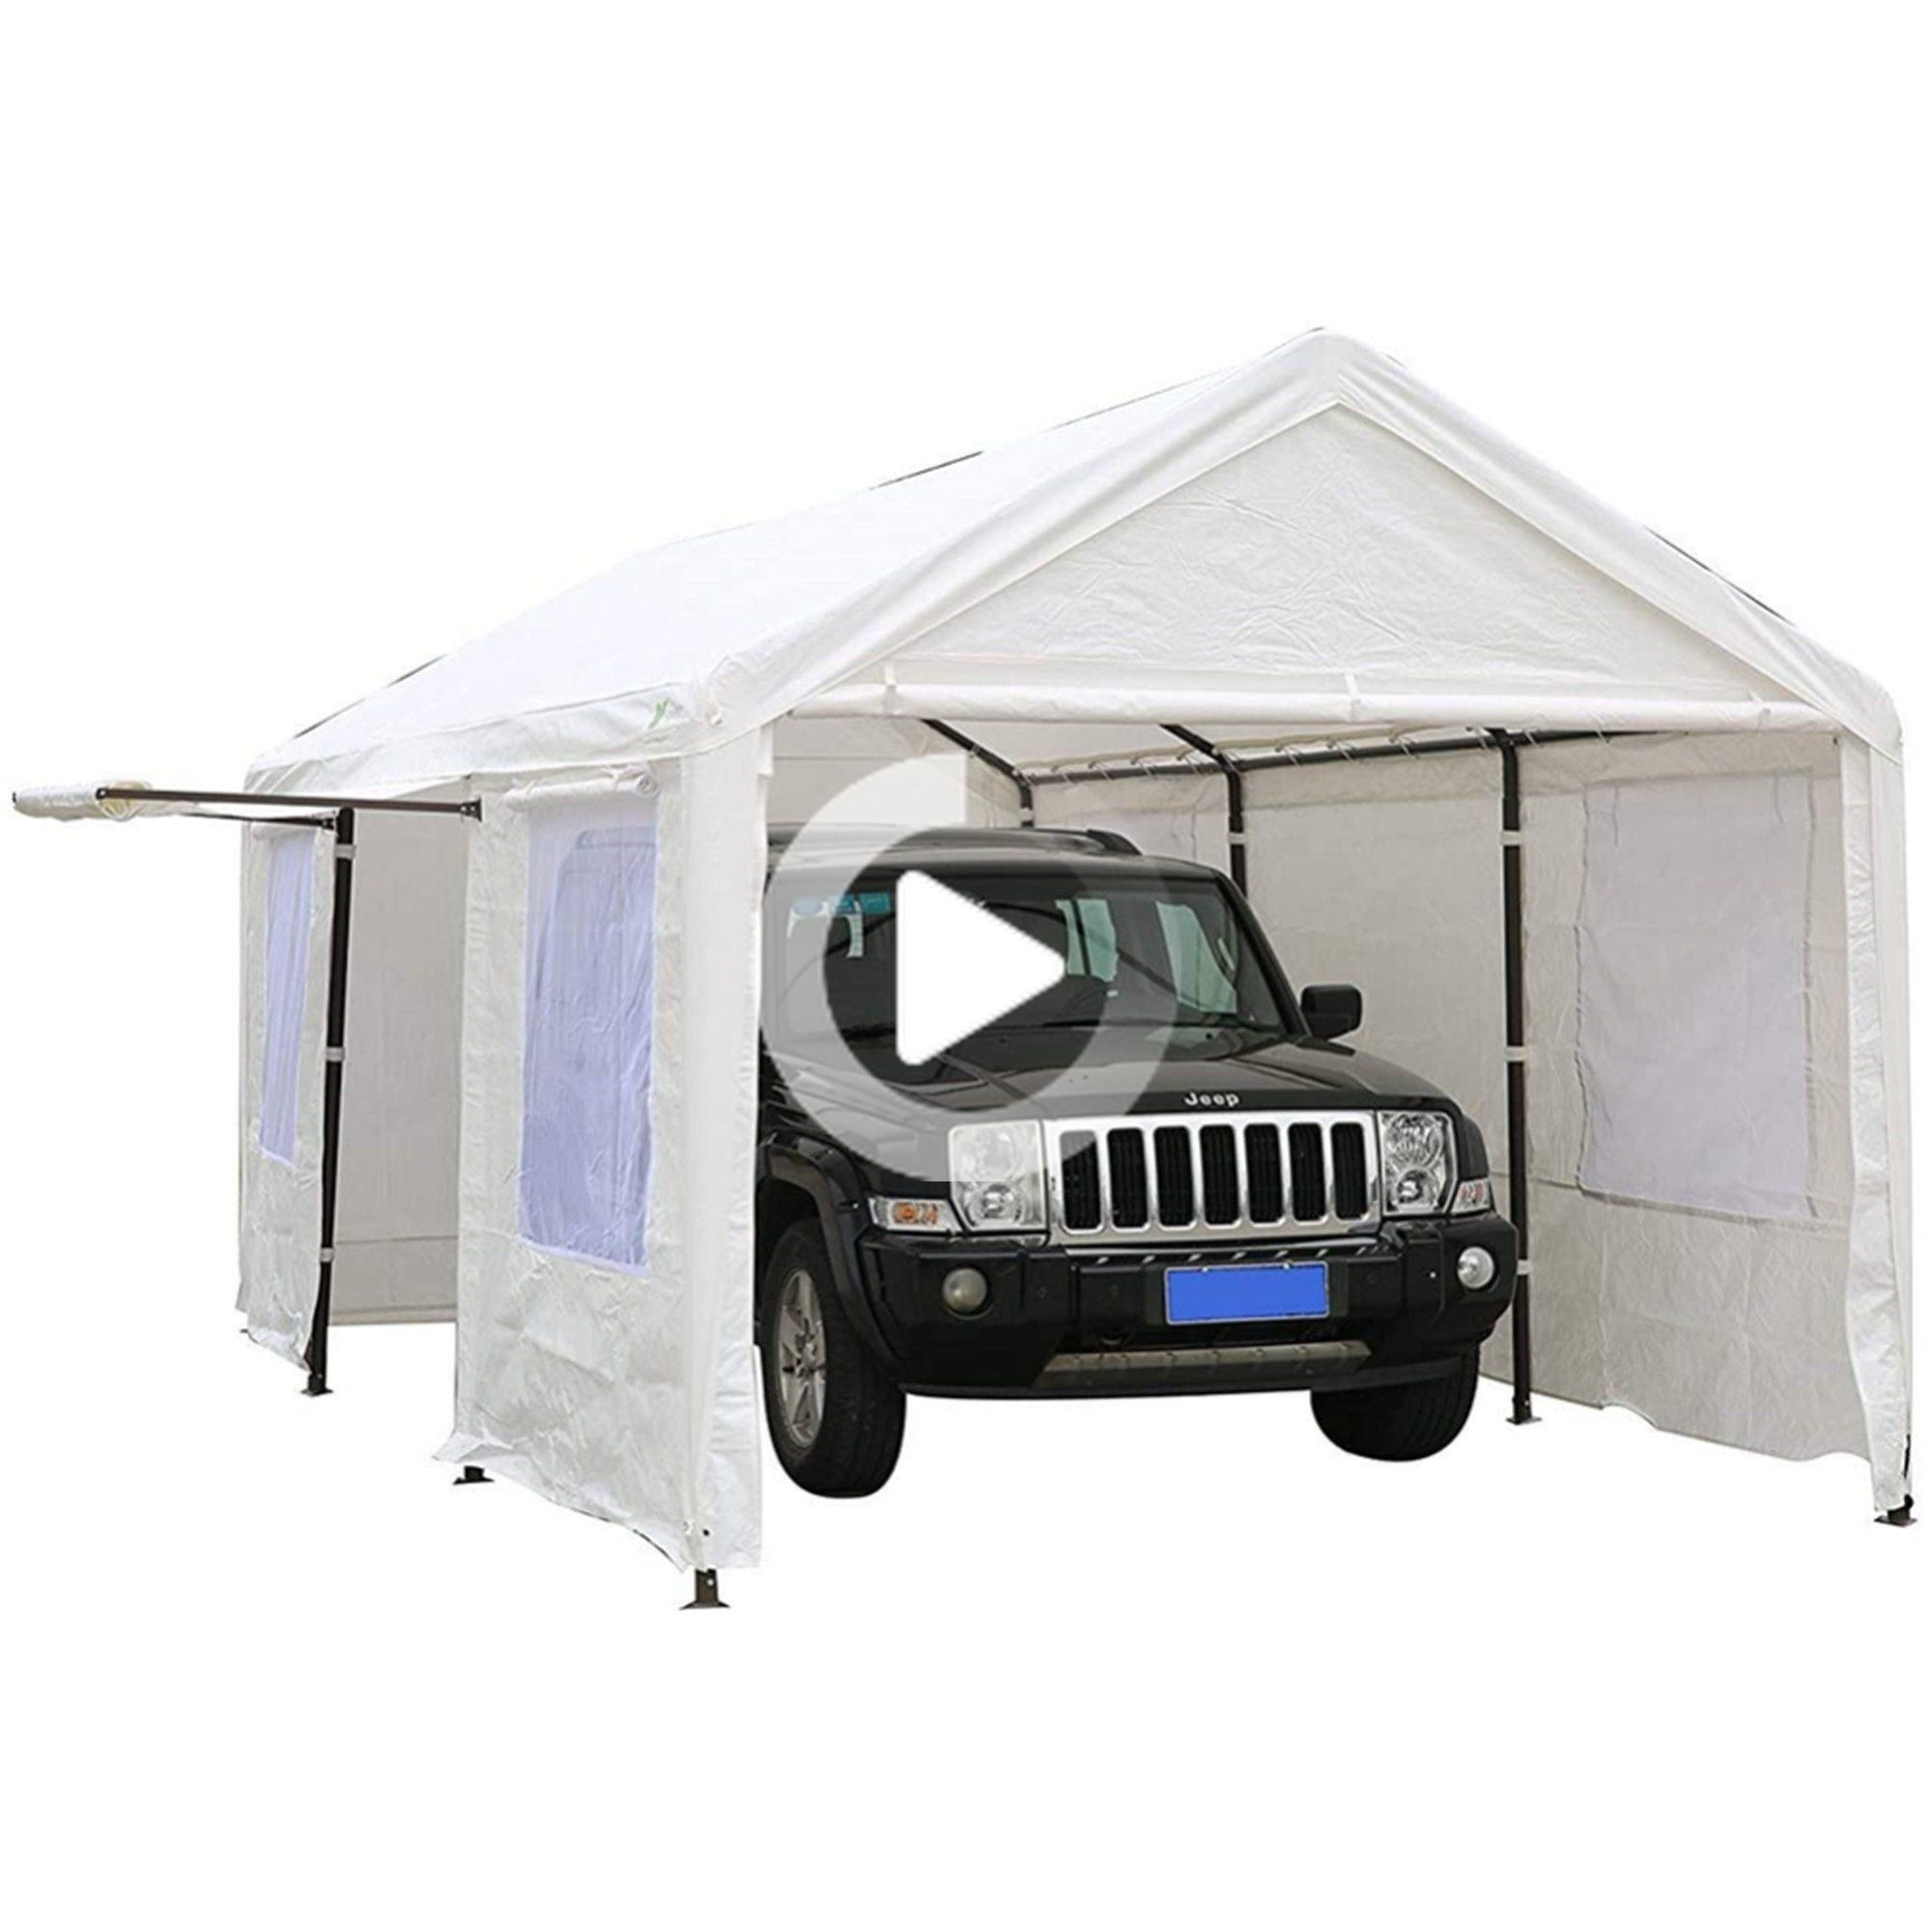 SORARA 10 x 20 ft Heavy Duty Carport Garage Car Shelter